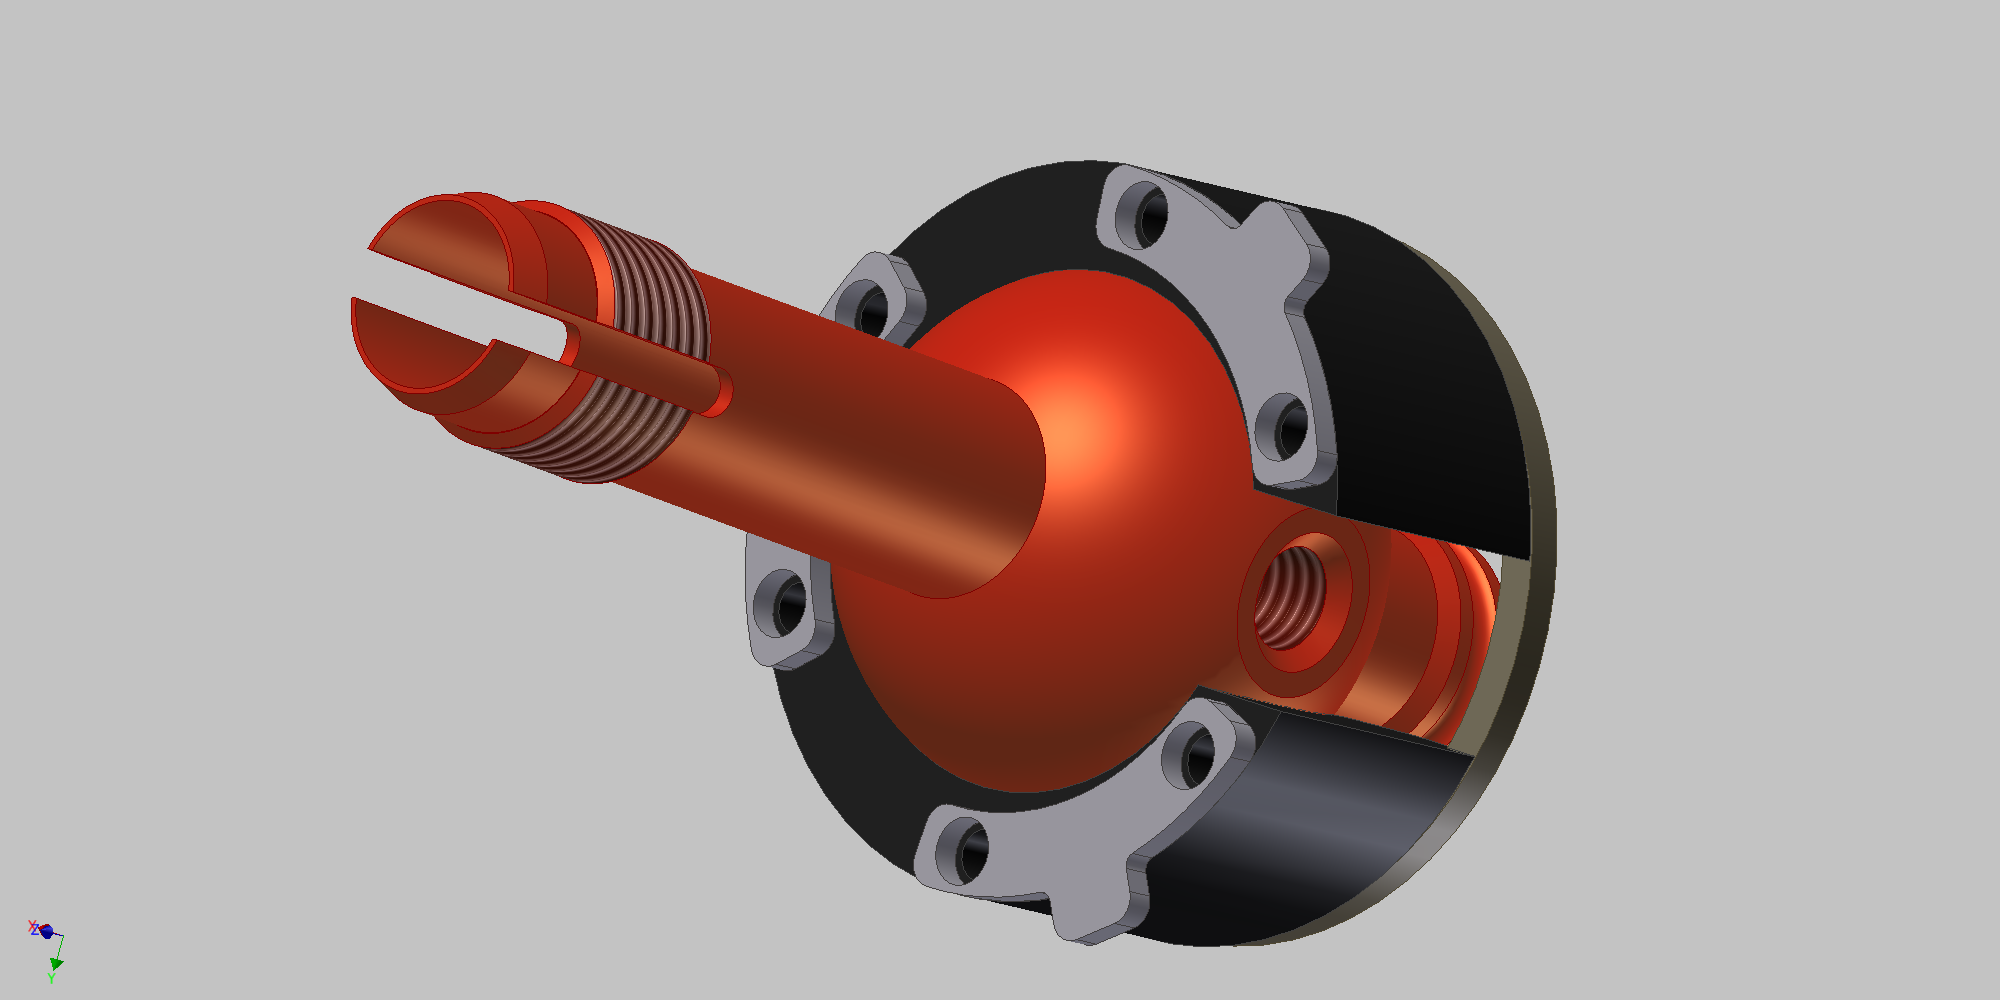 A render of the assembly with the final lock design.